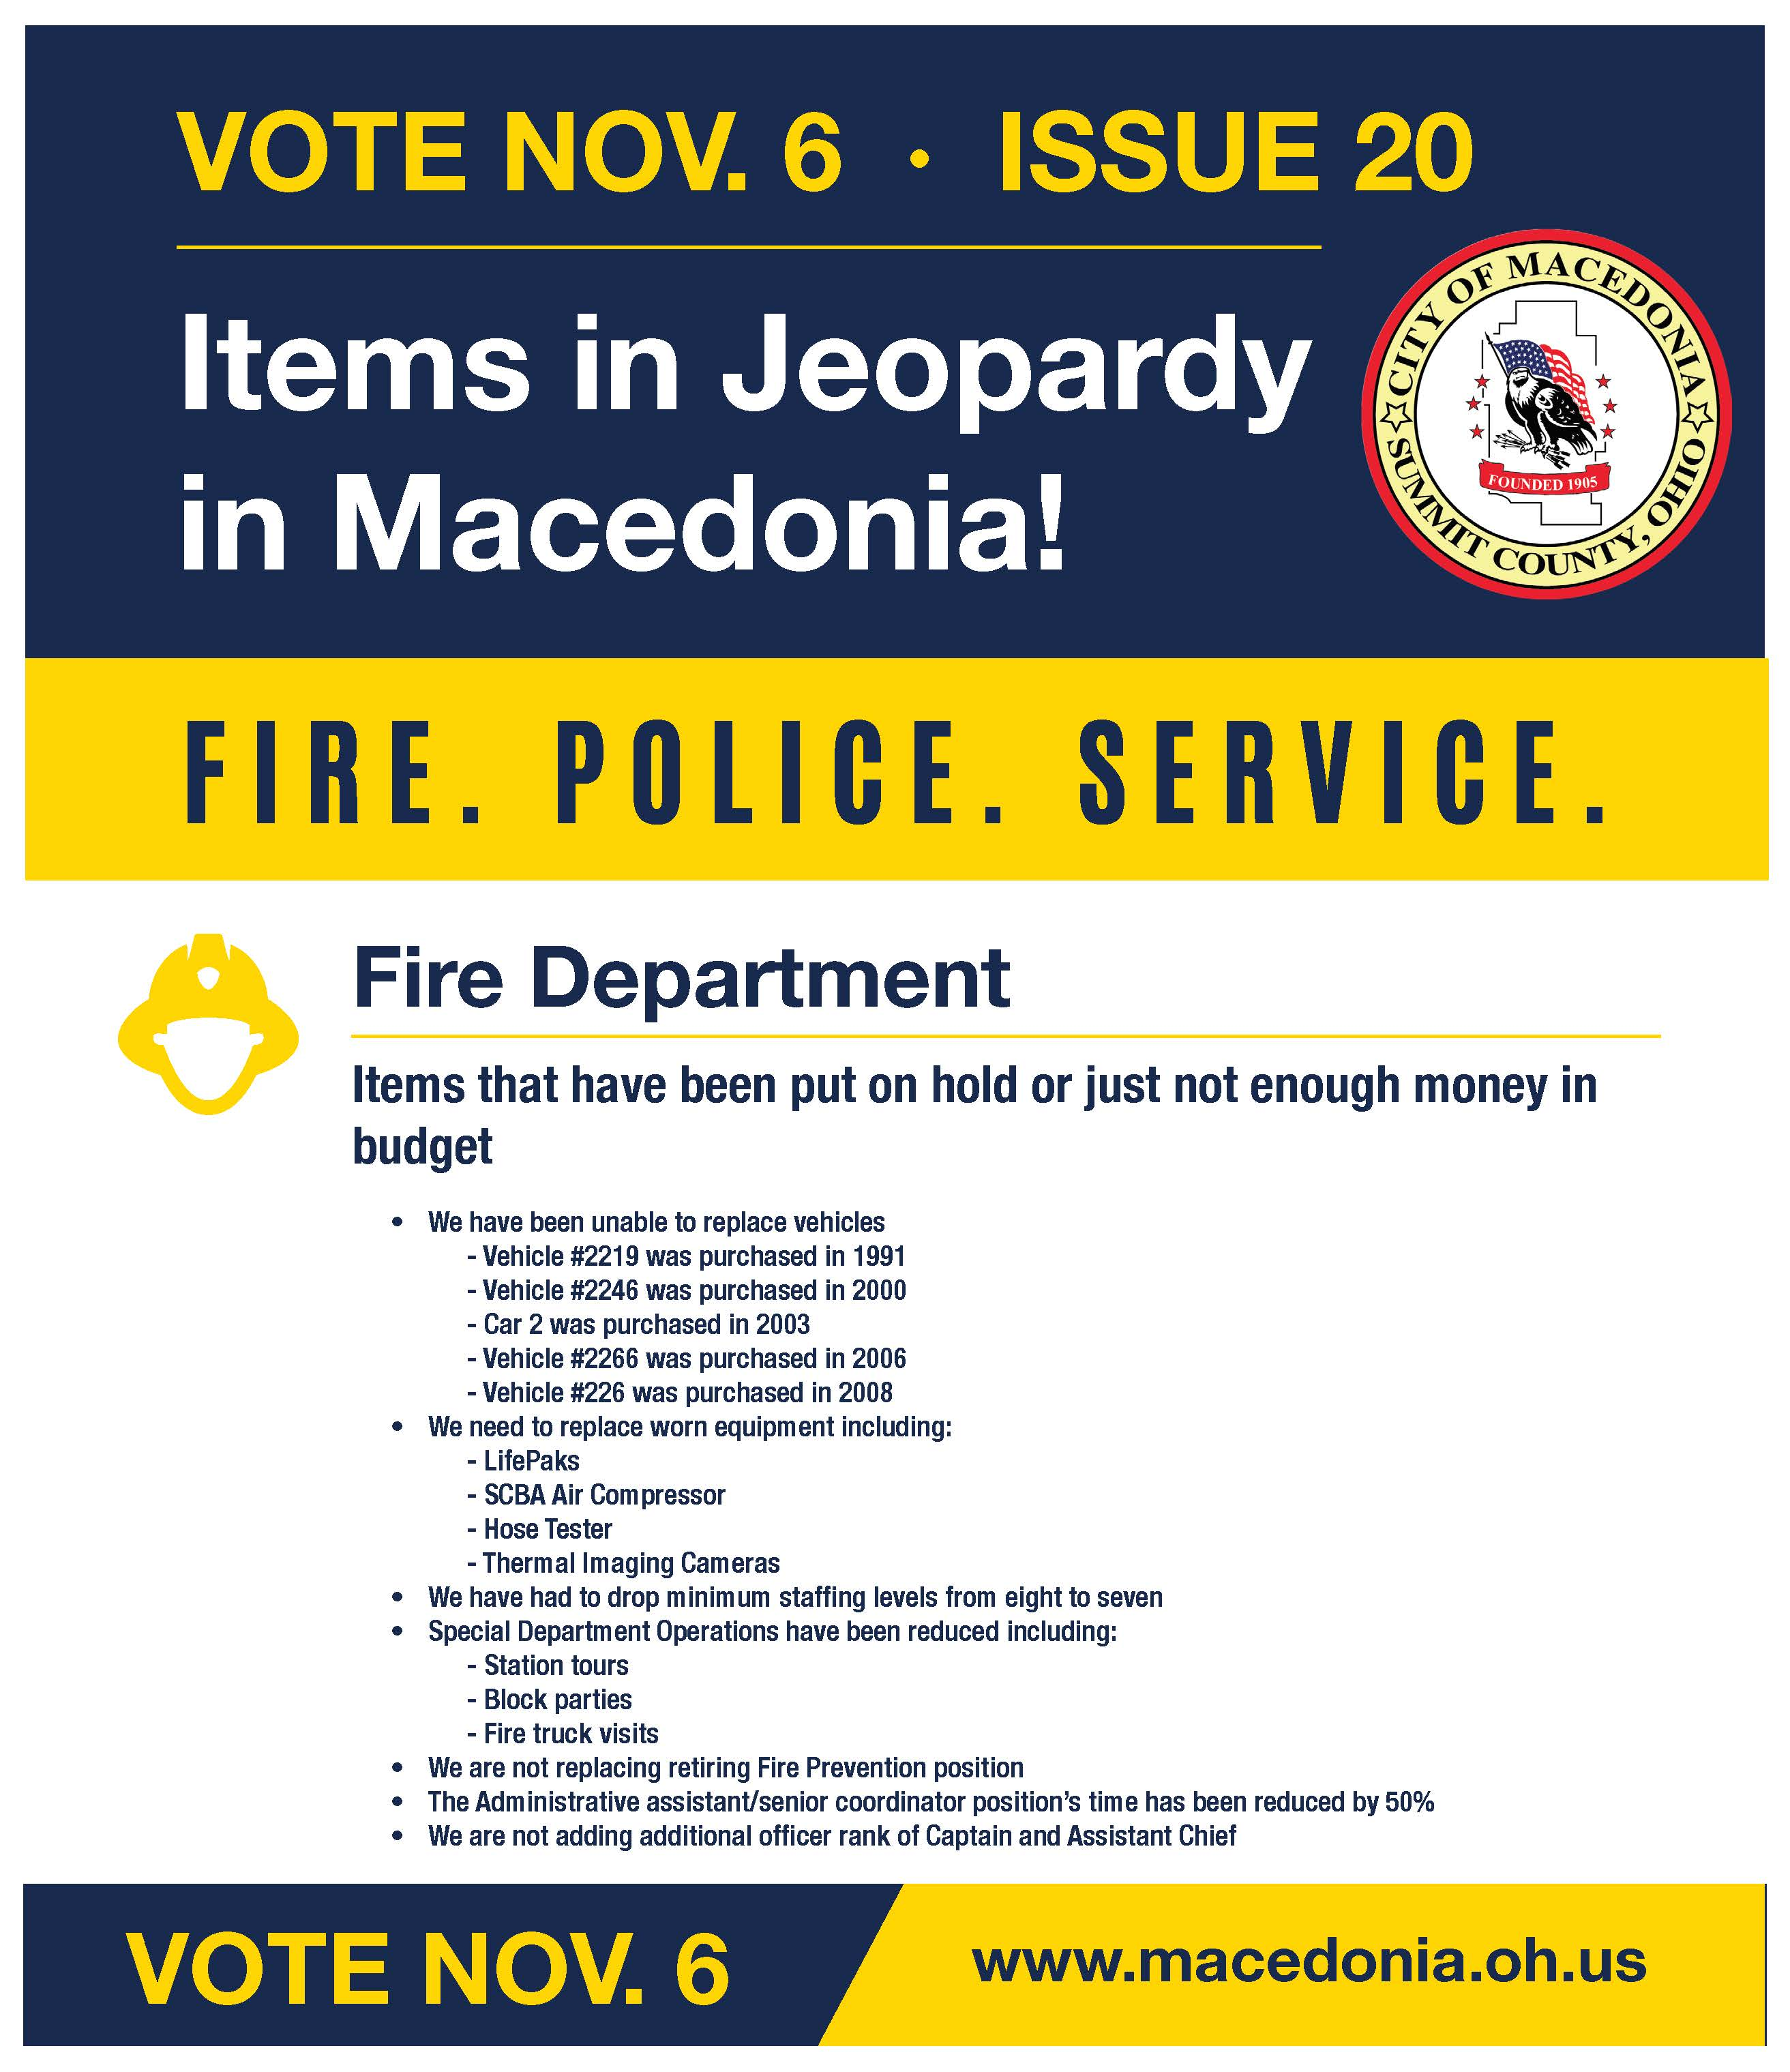 FIRE Jeopardy Items